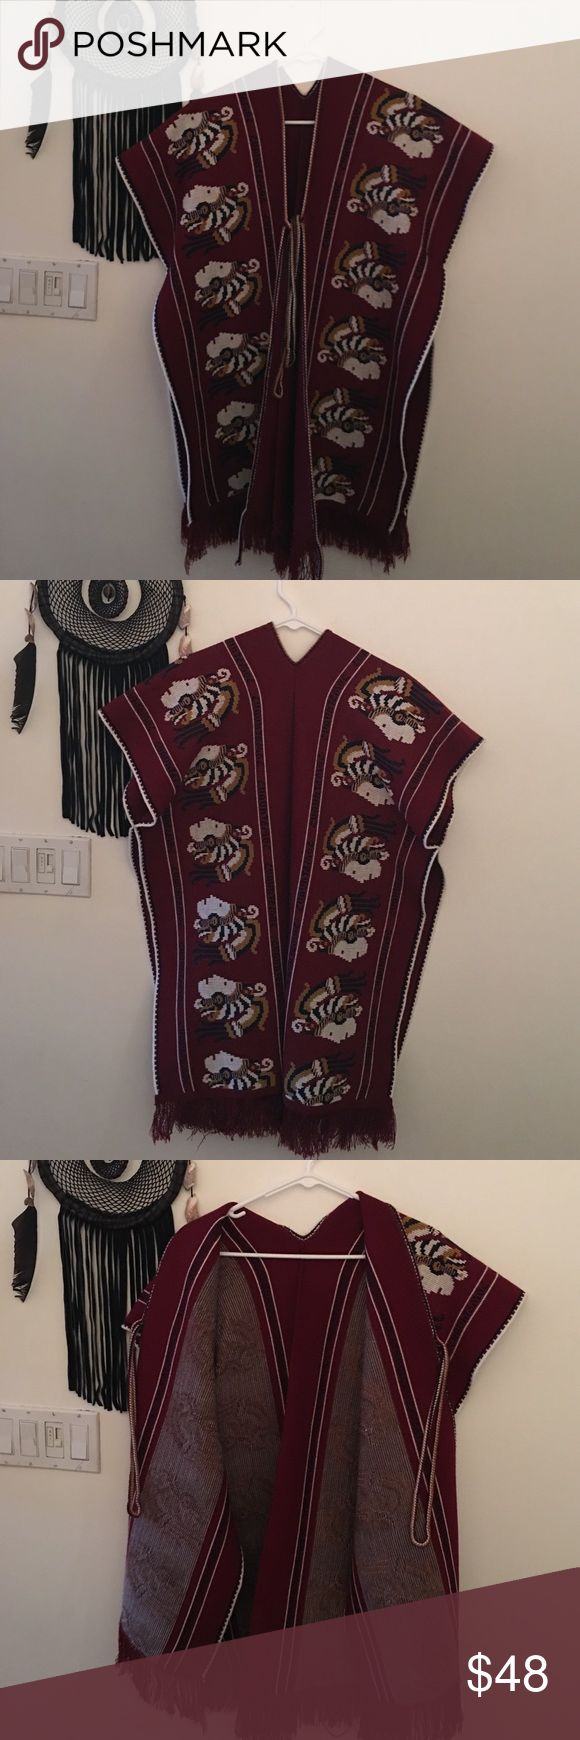 Native Poncho🌵🏹 This piece has Chiefs all over it, it's incredible! I wasn't going to part with it, but I don't wear it. This is in incredible condition as you can see from photos. Best fits a small or medium. It's not supposed to be tight, it's supposed to fit loosely over whatever you might want to wear it over. I think it would look grand with some bell bottoms, or a long tight maxi dress with ankle boots. It's so good. 👅 Vintage Sweaters Shrugs & Ponchos